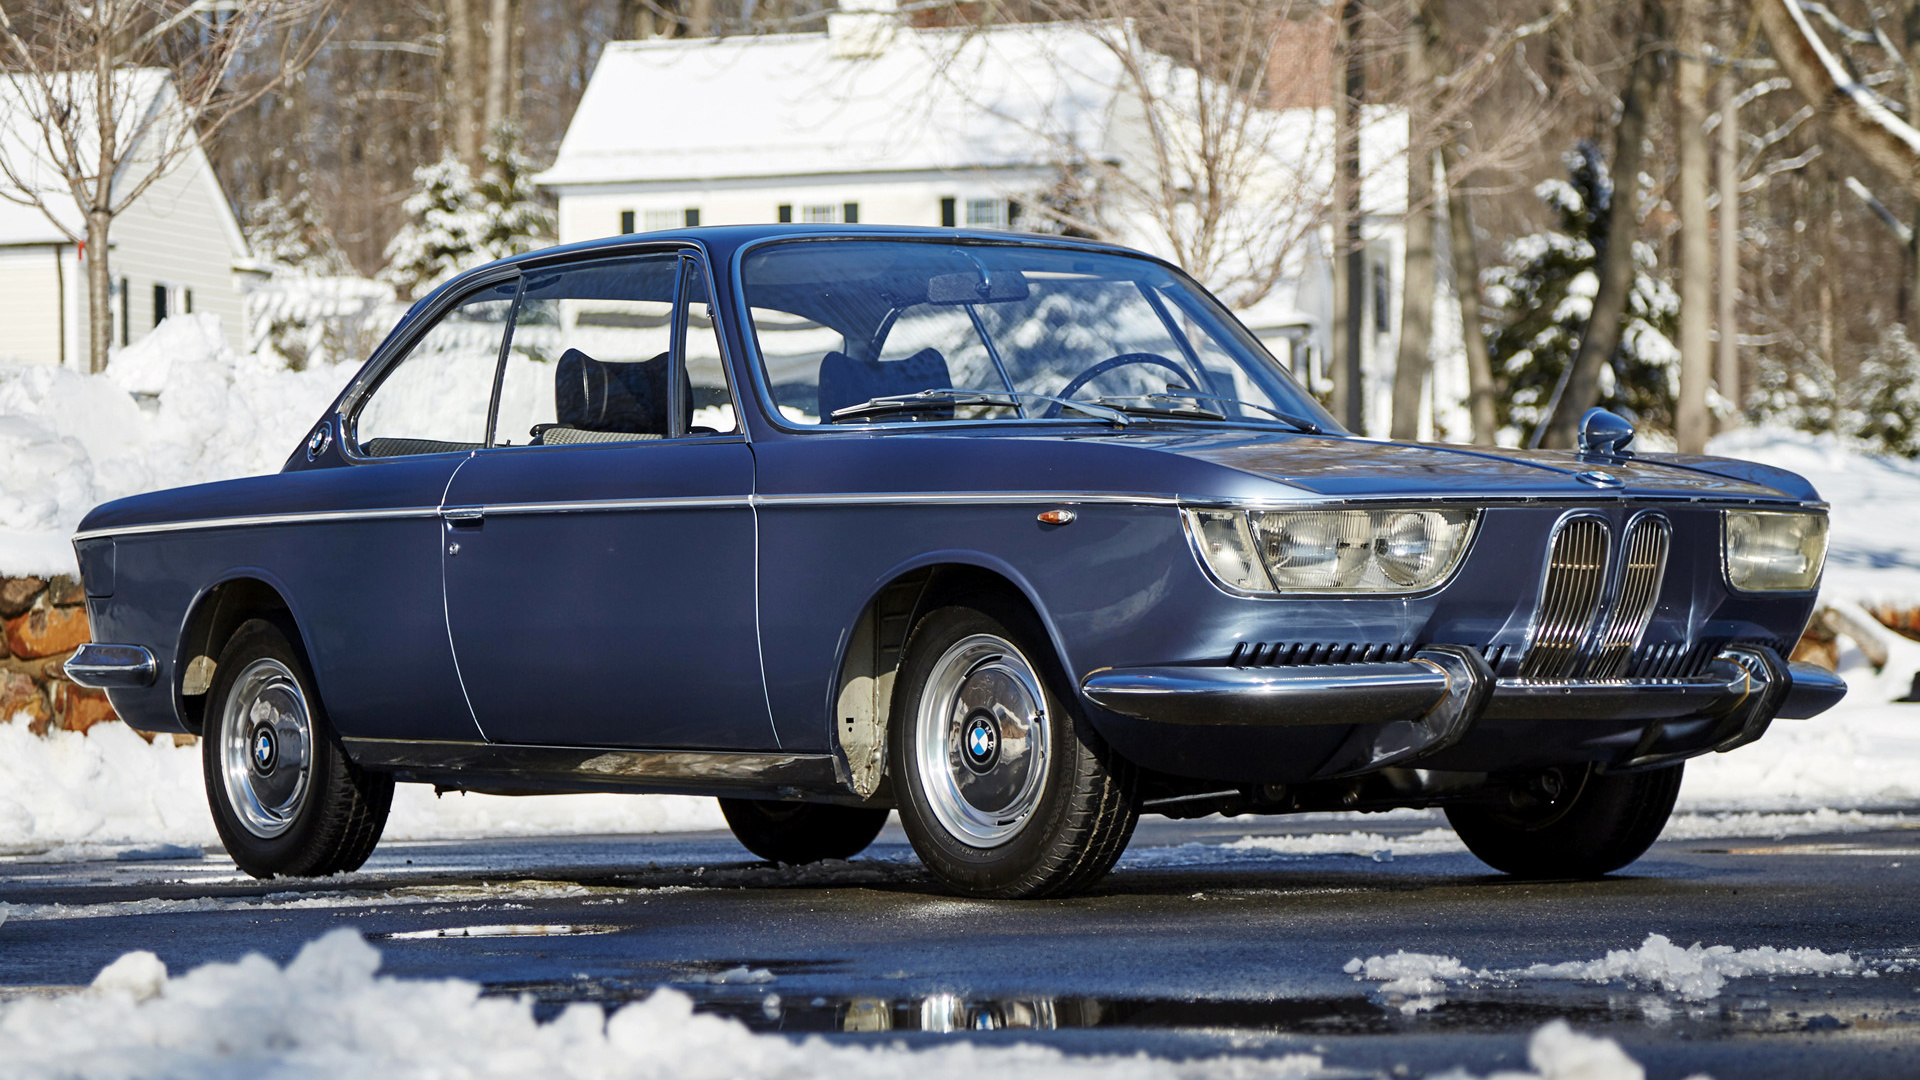 1966 BMW 2000 CS Wallpapers | SuperCars.net - Today's ...